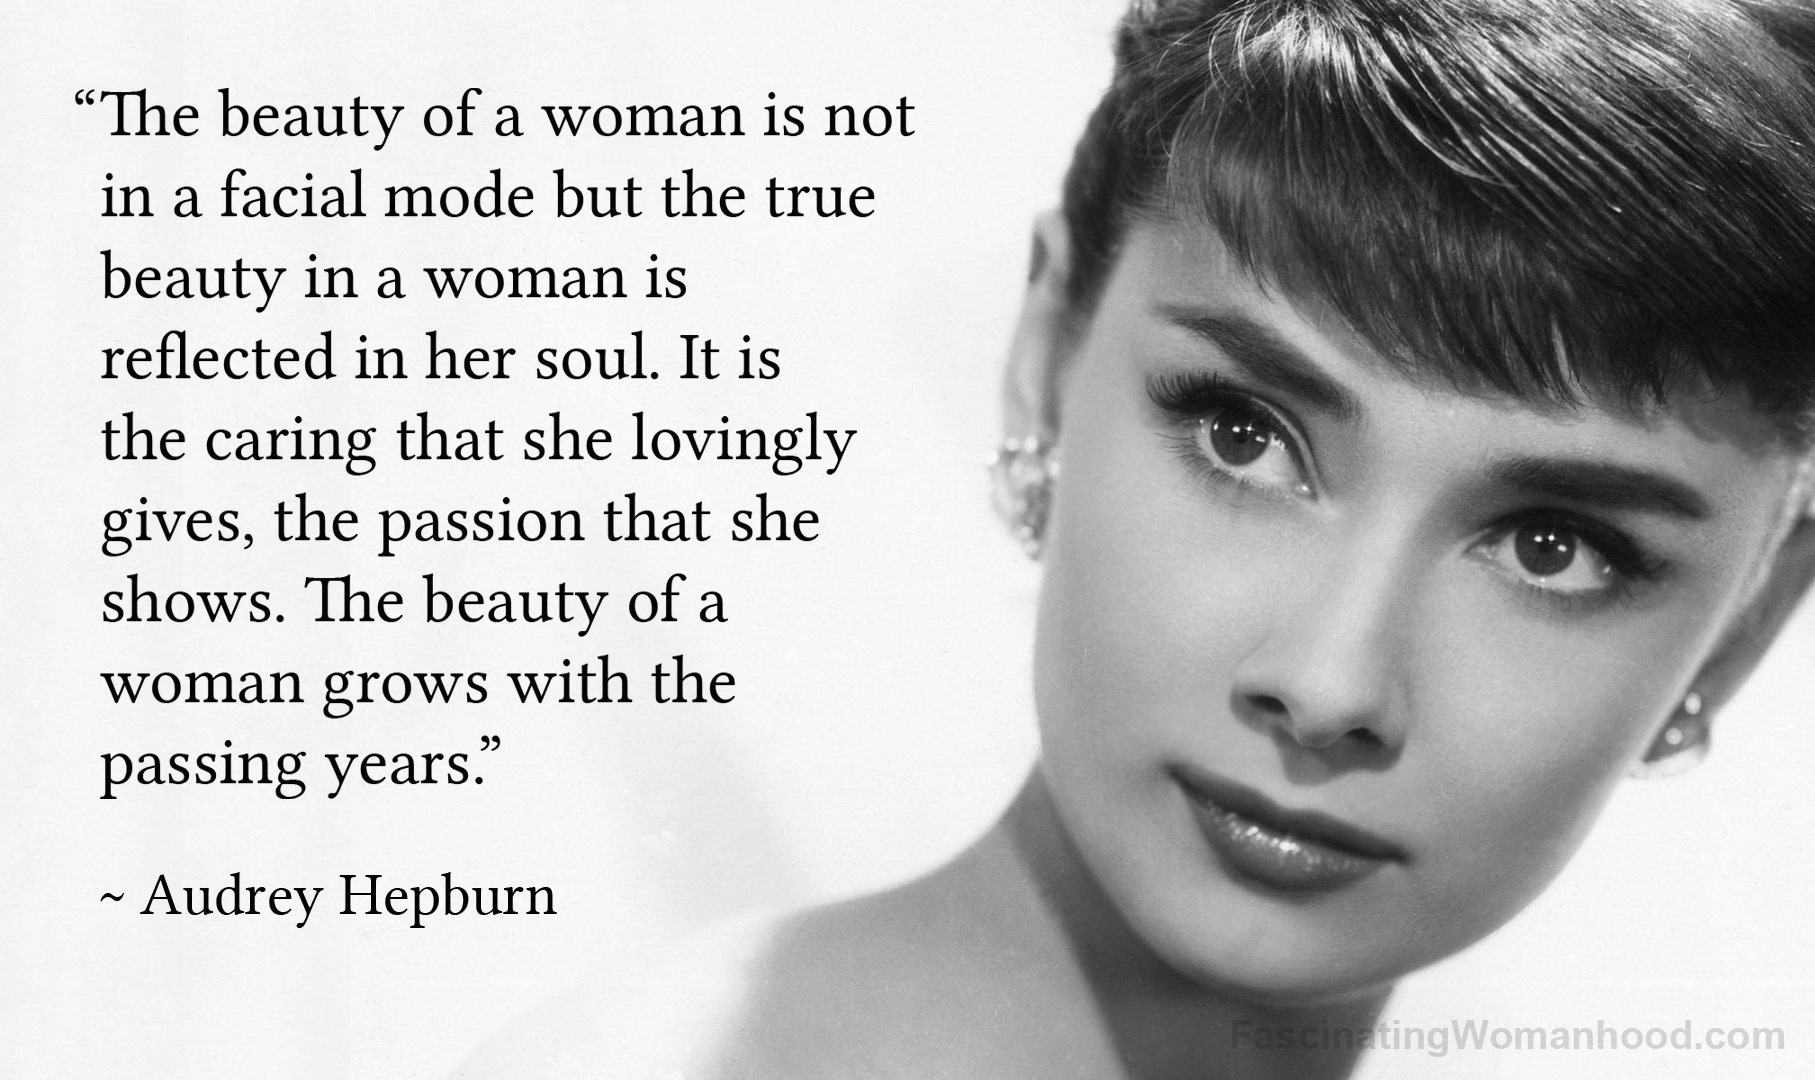 A Quote by Audrey Hepburn 5.jpg